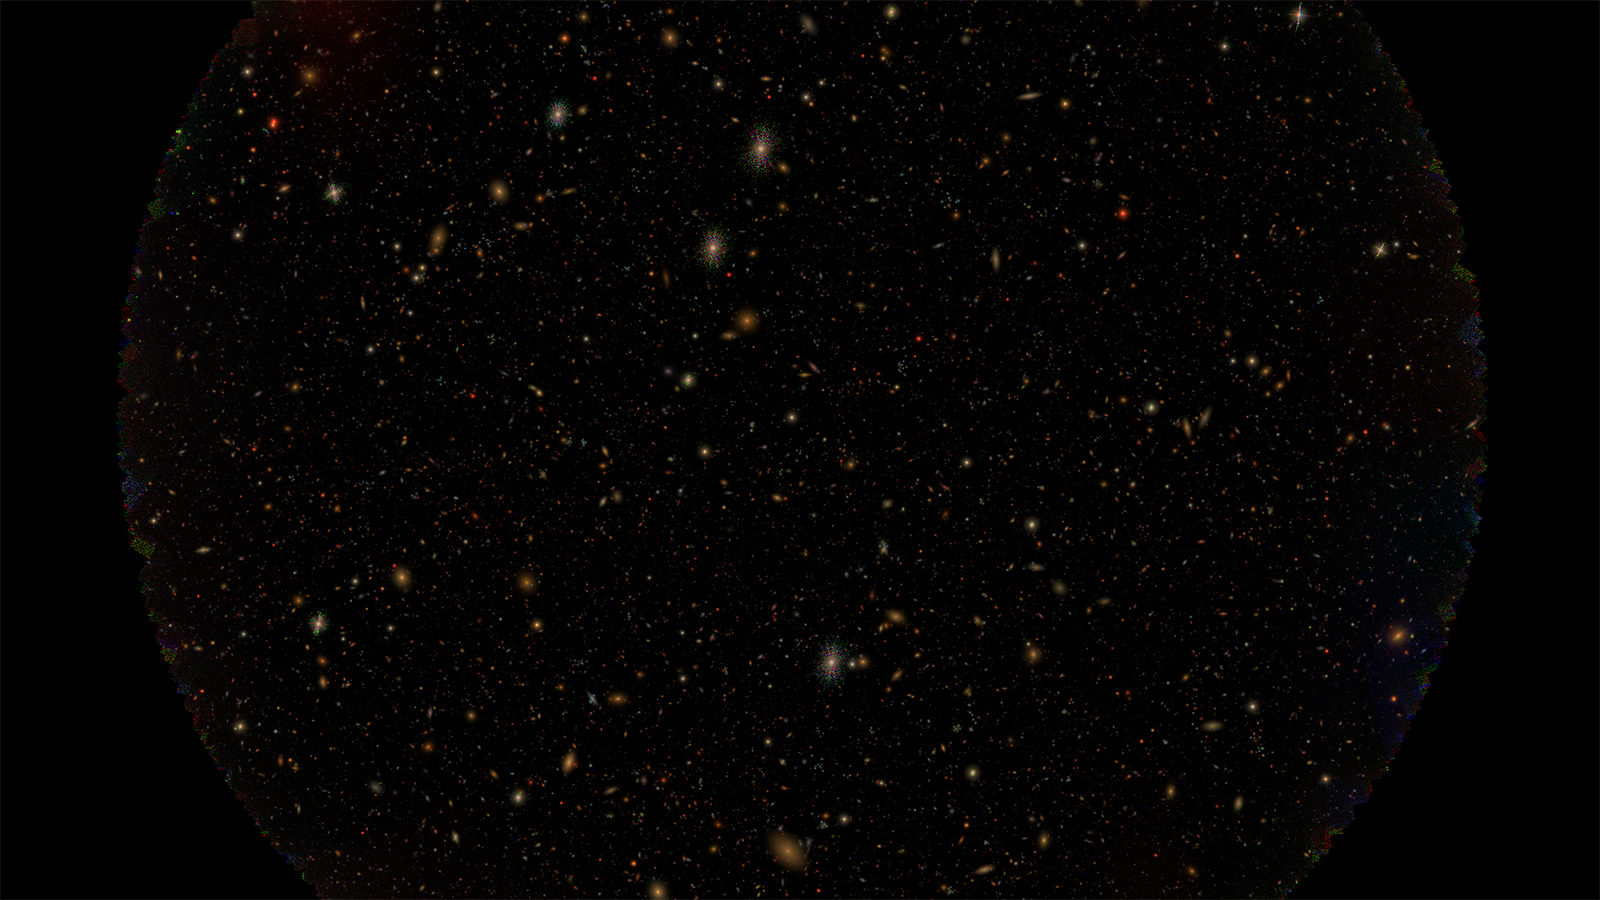 A simulation of stars against a black background